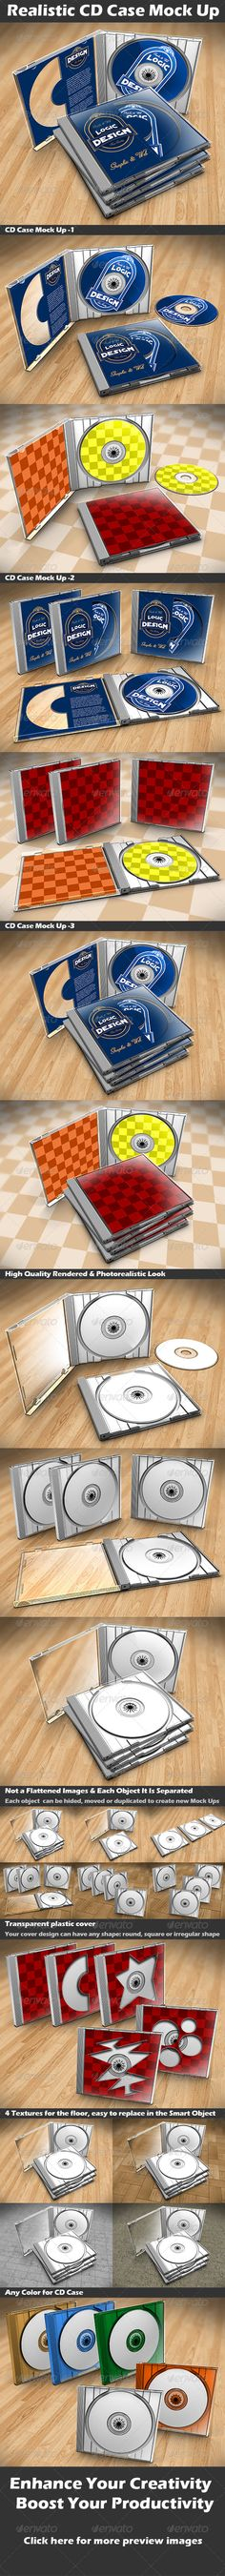 DJ Sound u2013 Free CD Cover PSD Template https\/\/wwwelegantflyer - compact cd envelope template